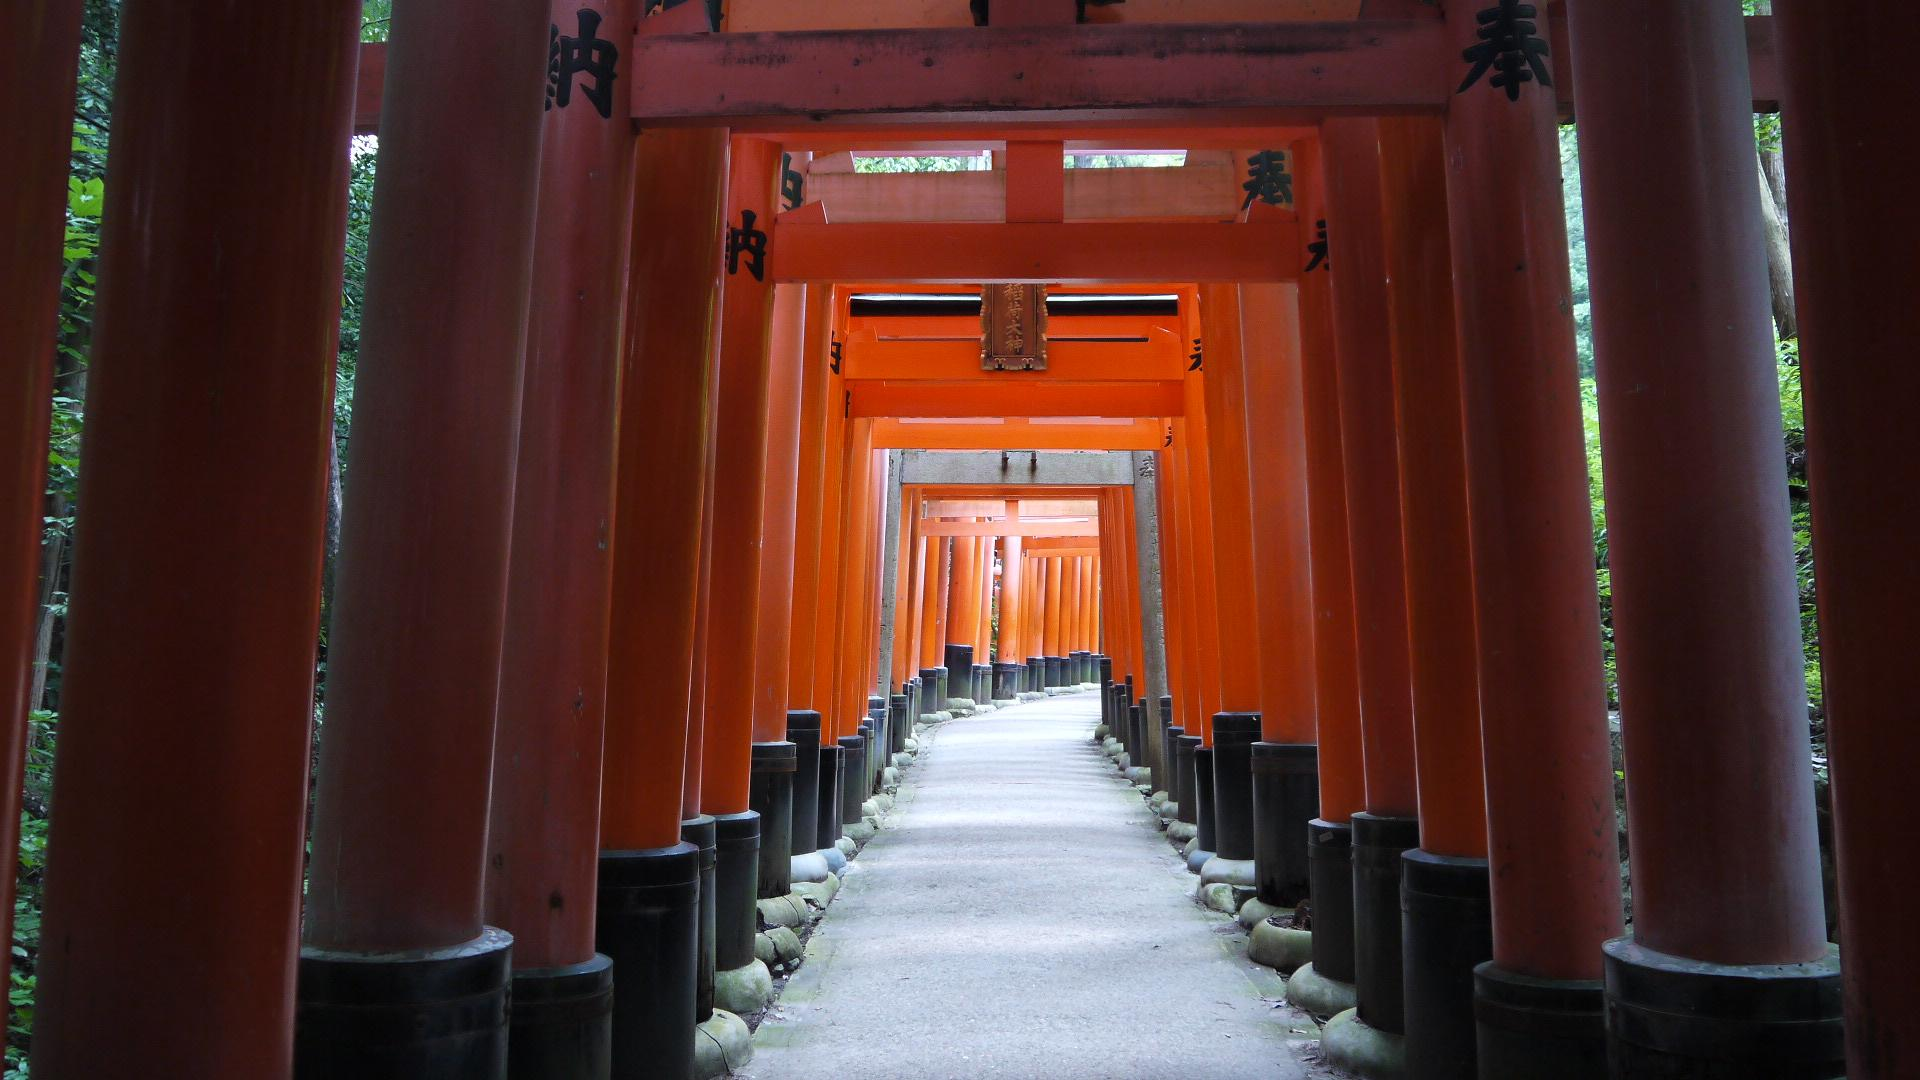 File:Fushimi Inari Shrine 伏見稲荷大社21